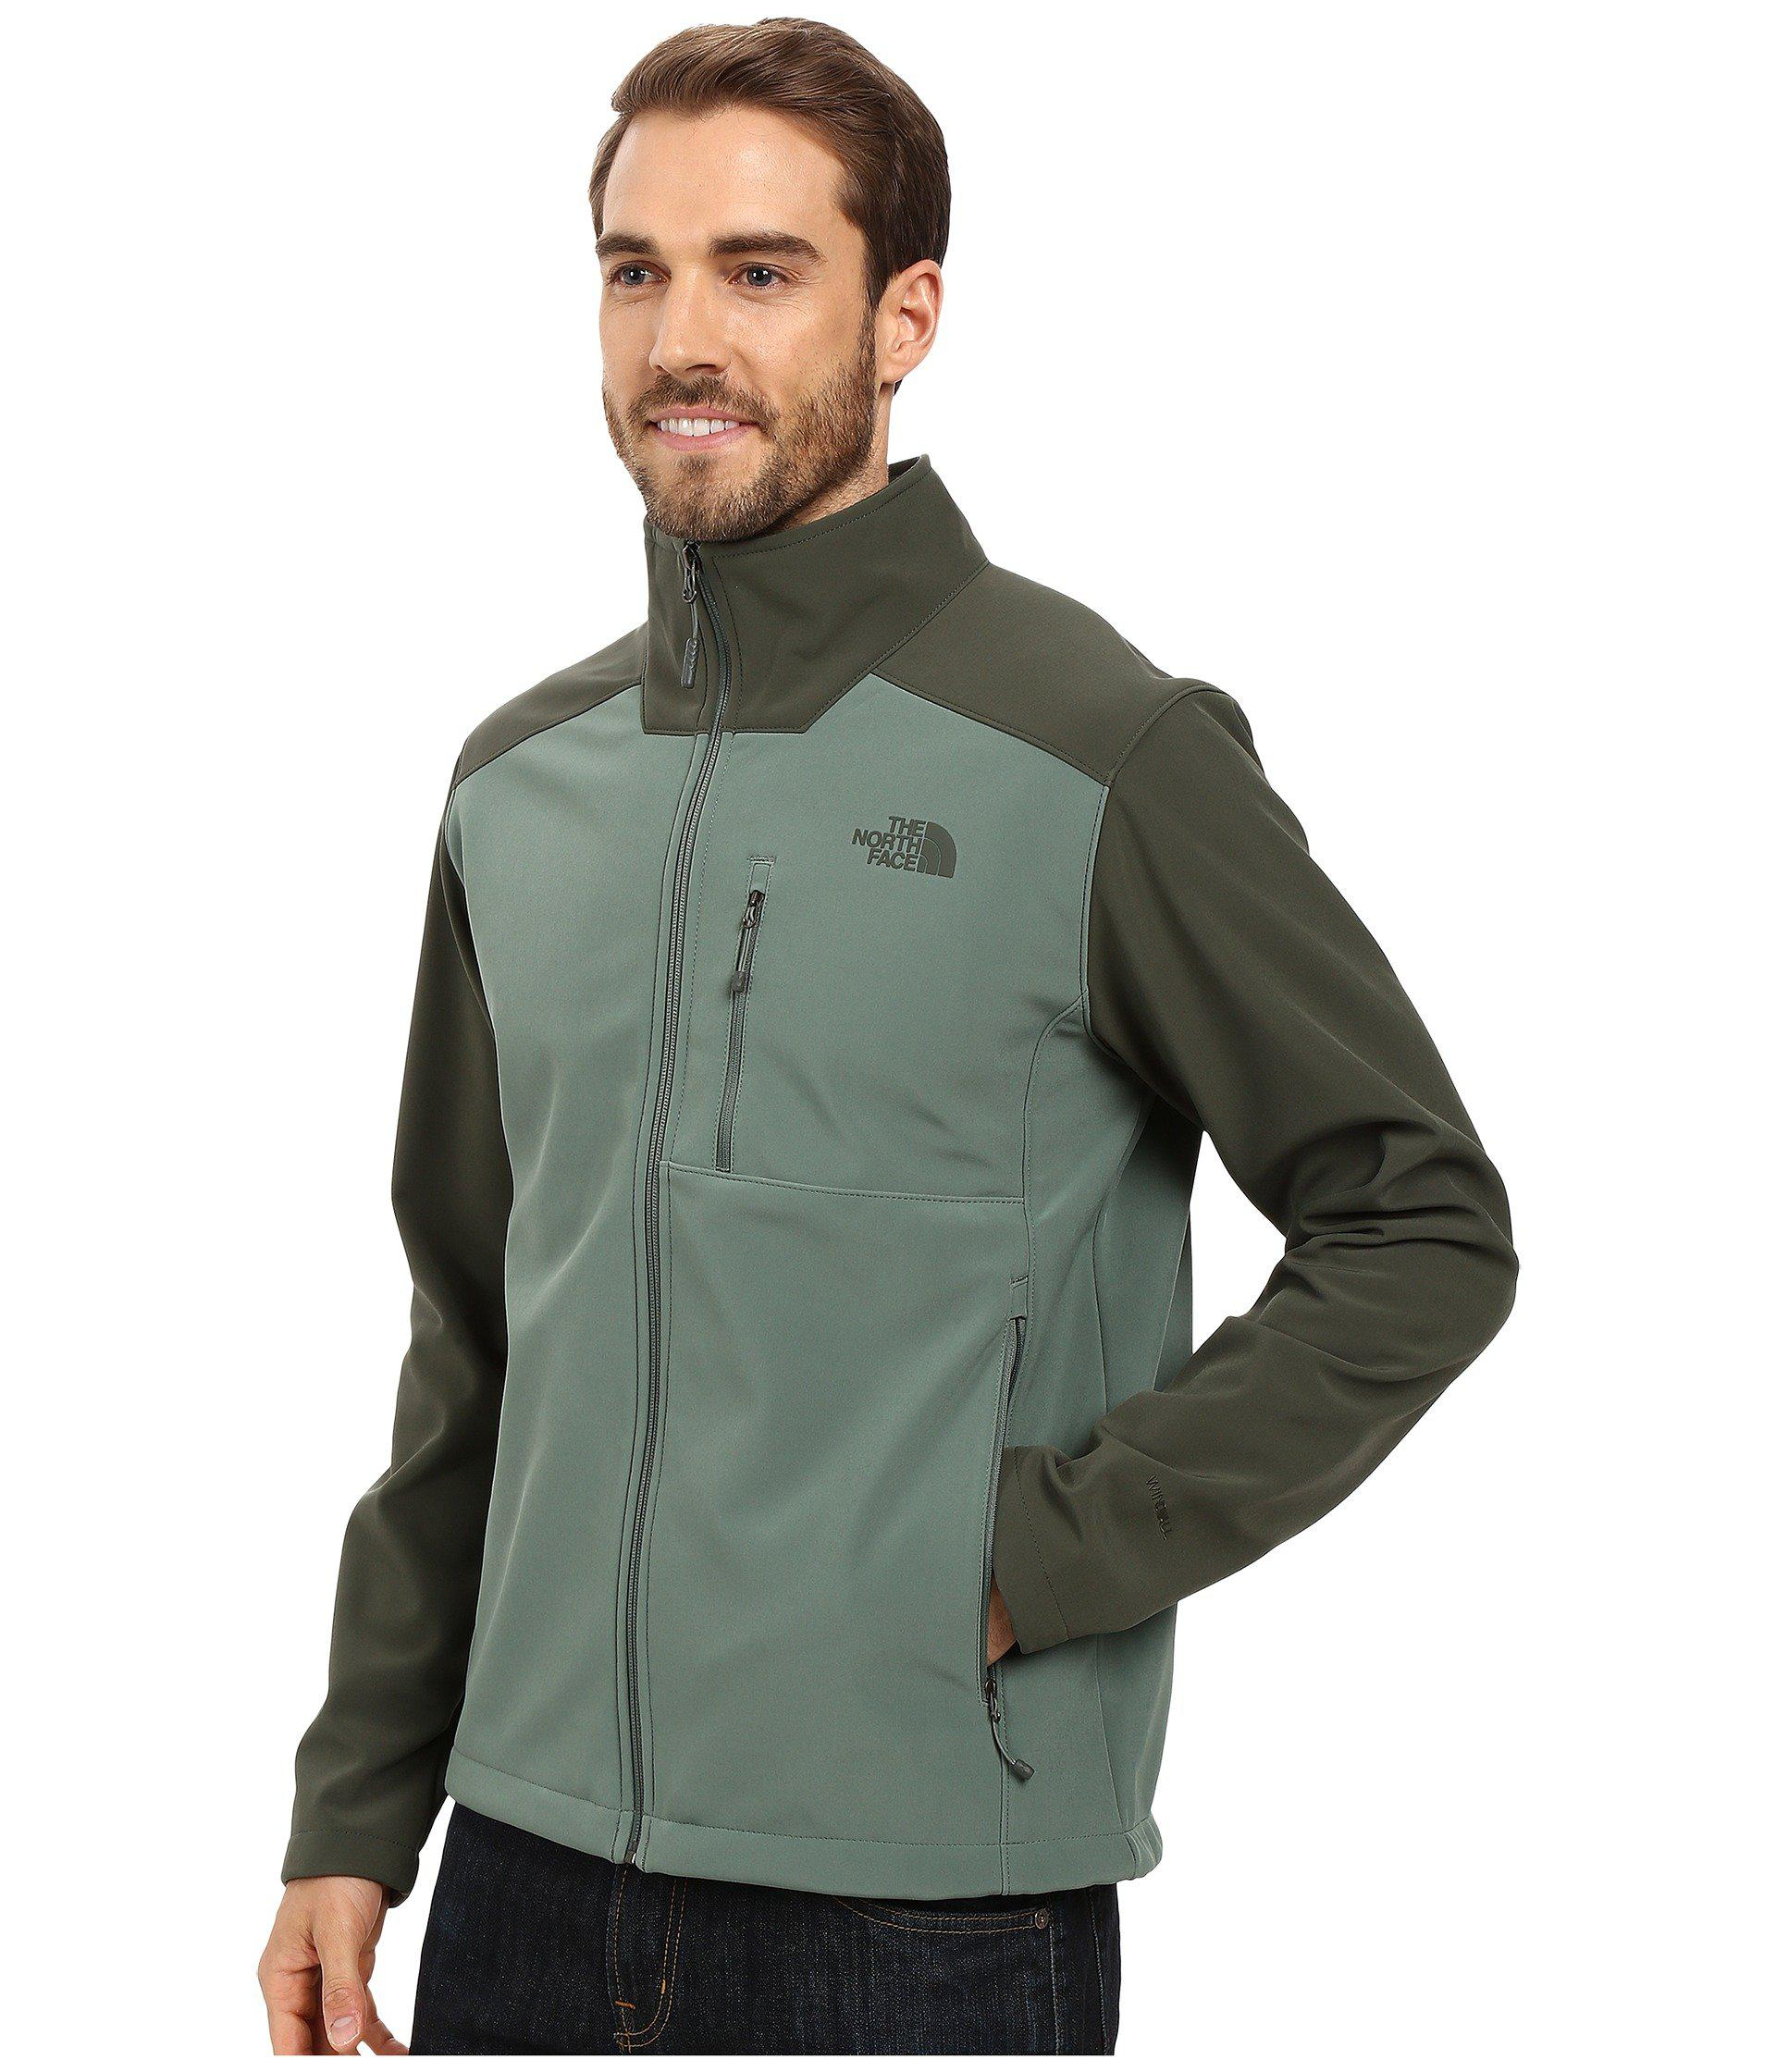 a3a9e34a1 authentic north face apex bionic 2 men 33c44 10a7e